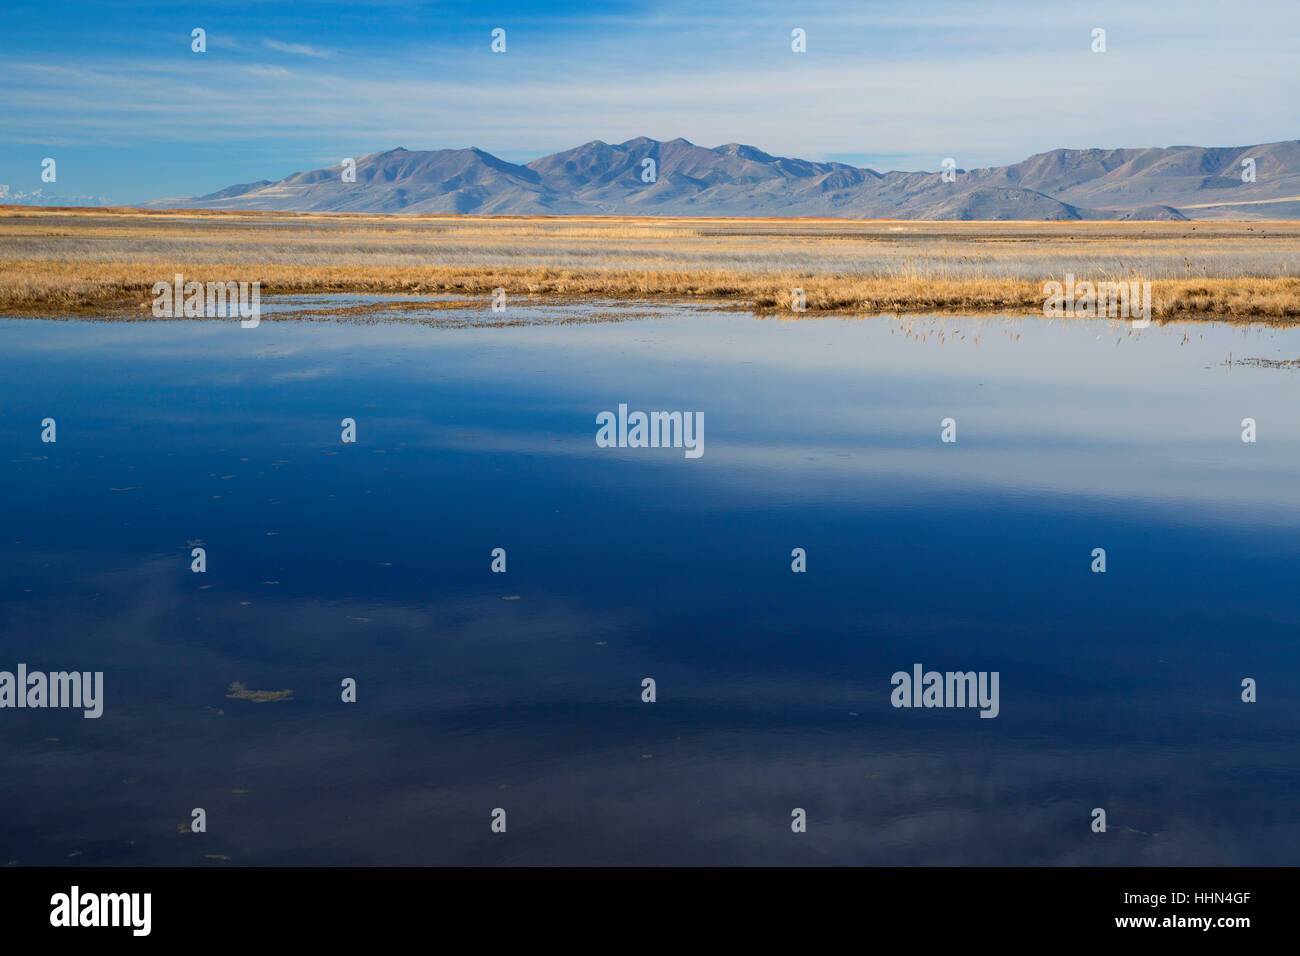 Great Salt Lake, Bear River Migratory Bird Refuge, Utah - Stock Image